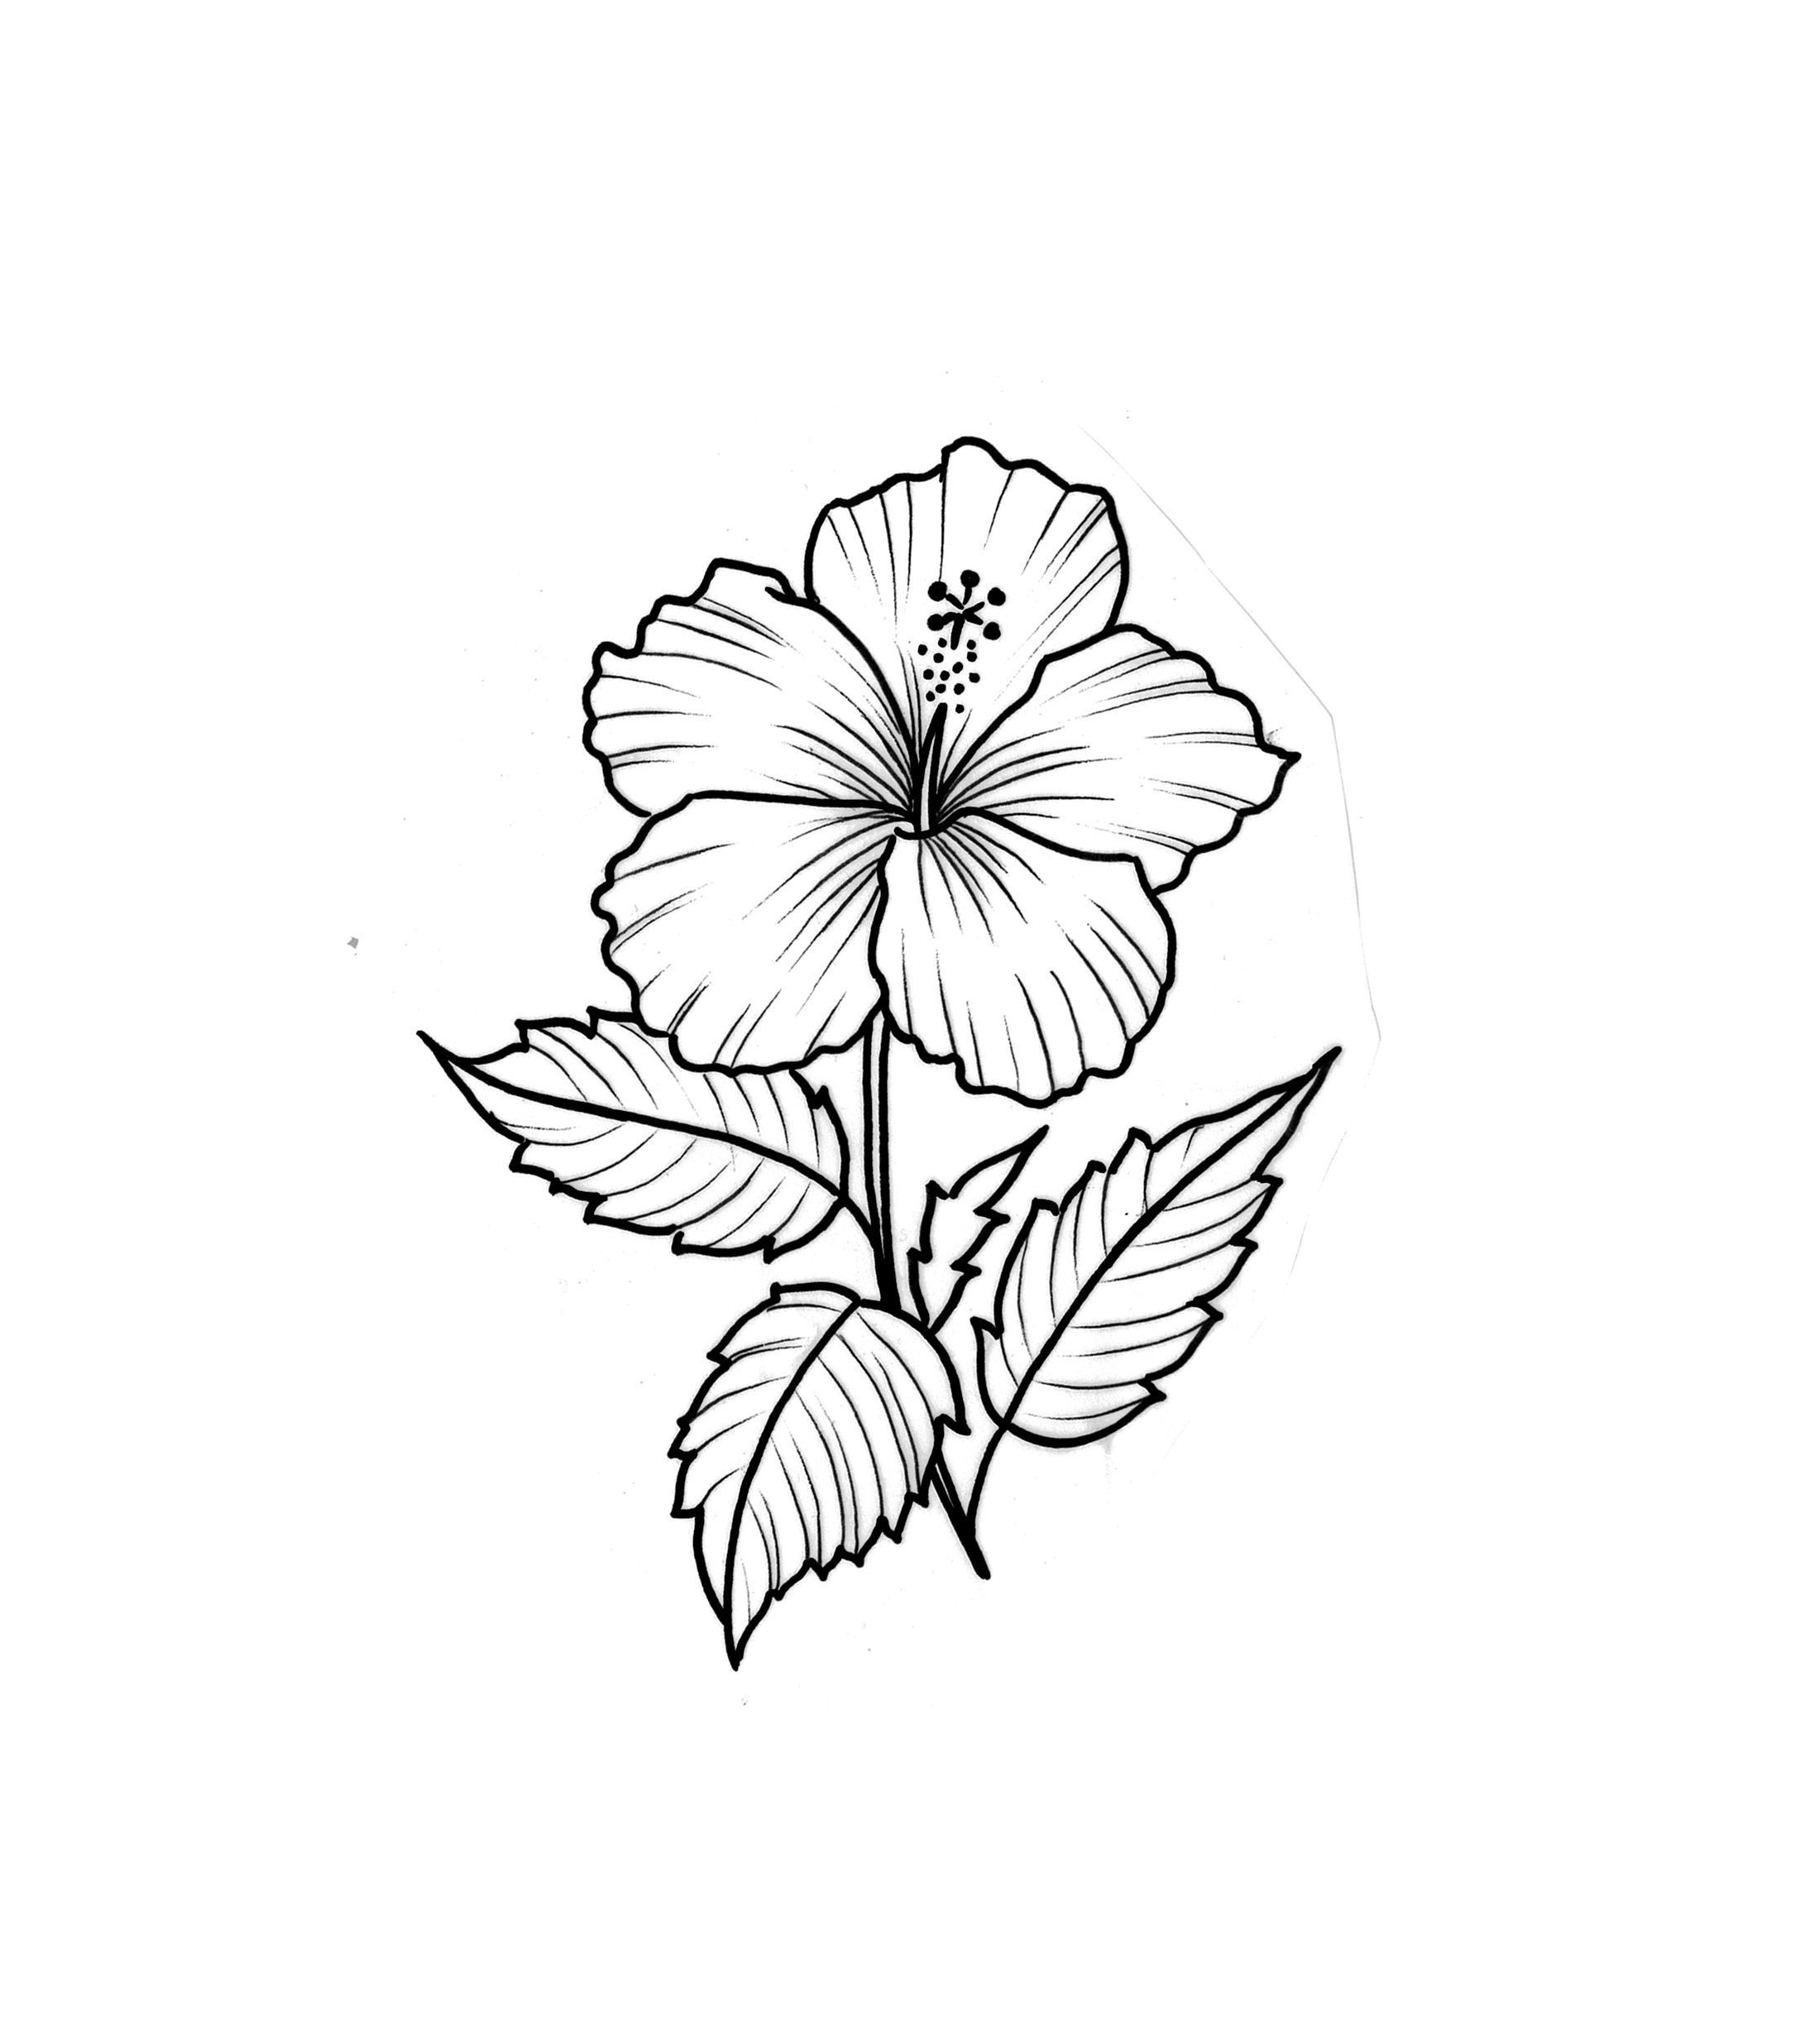 hibiscus drawing hibiscus line drawing  clipart best drawing hibiscus